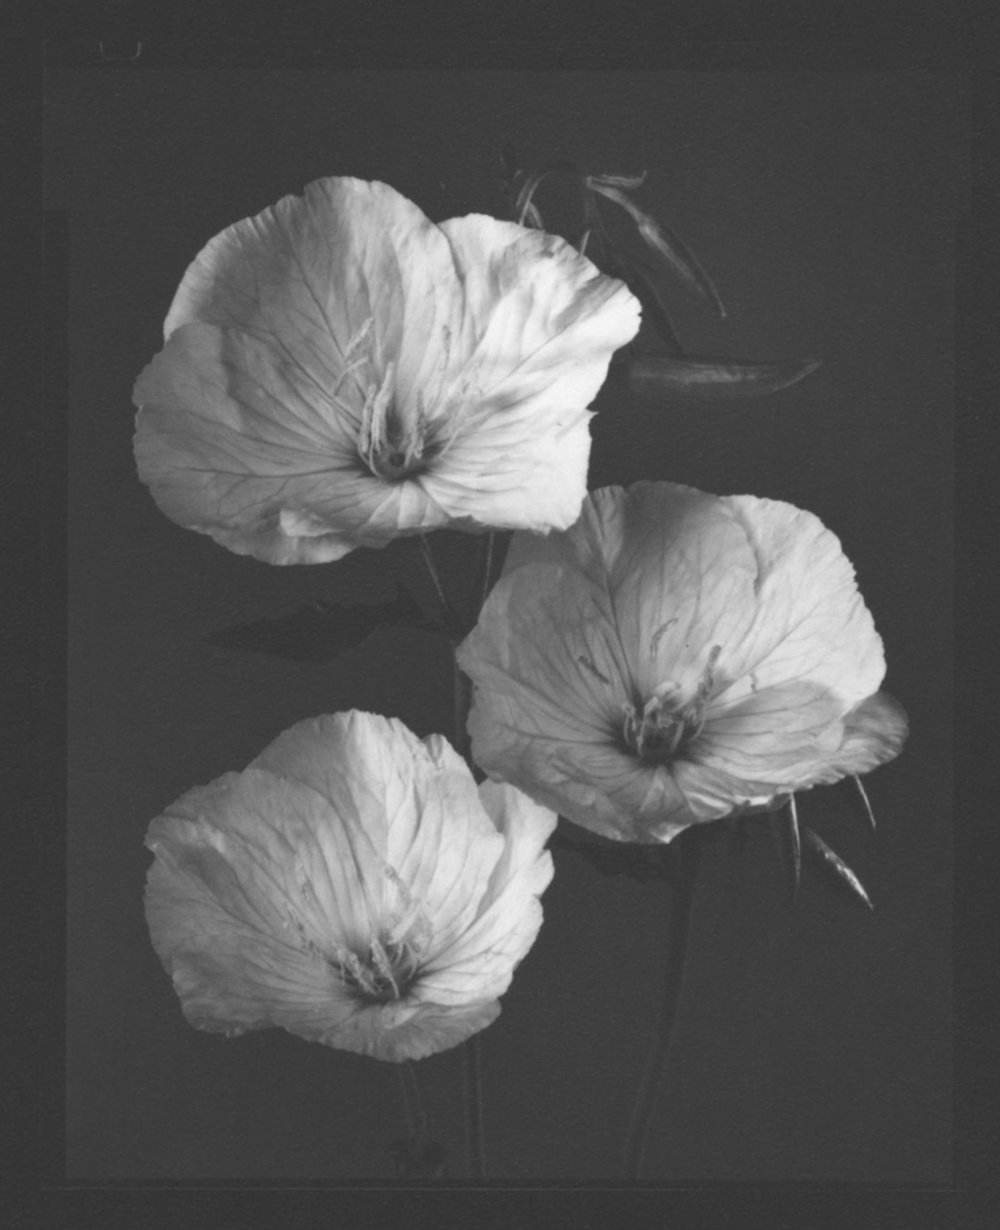 TOM BARIL Evening Primrose, 1998